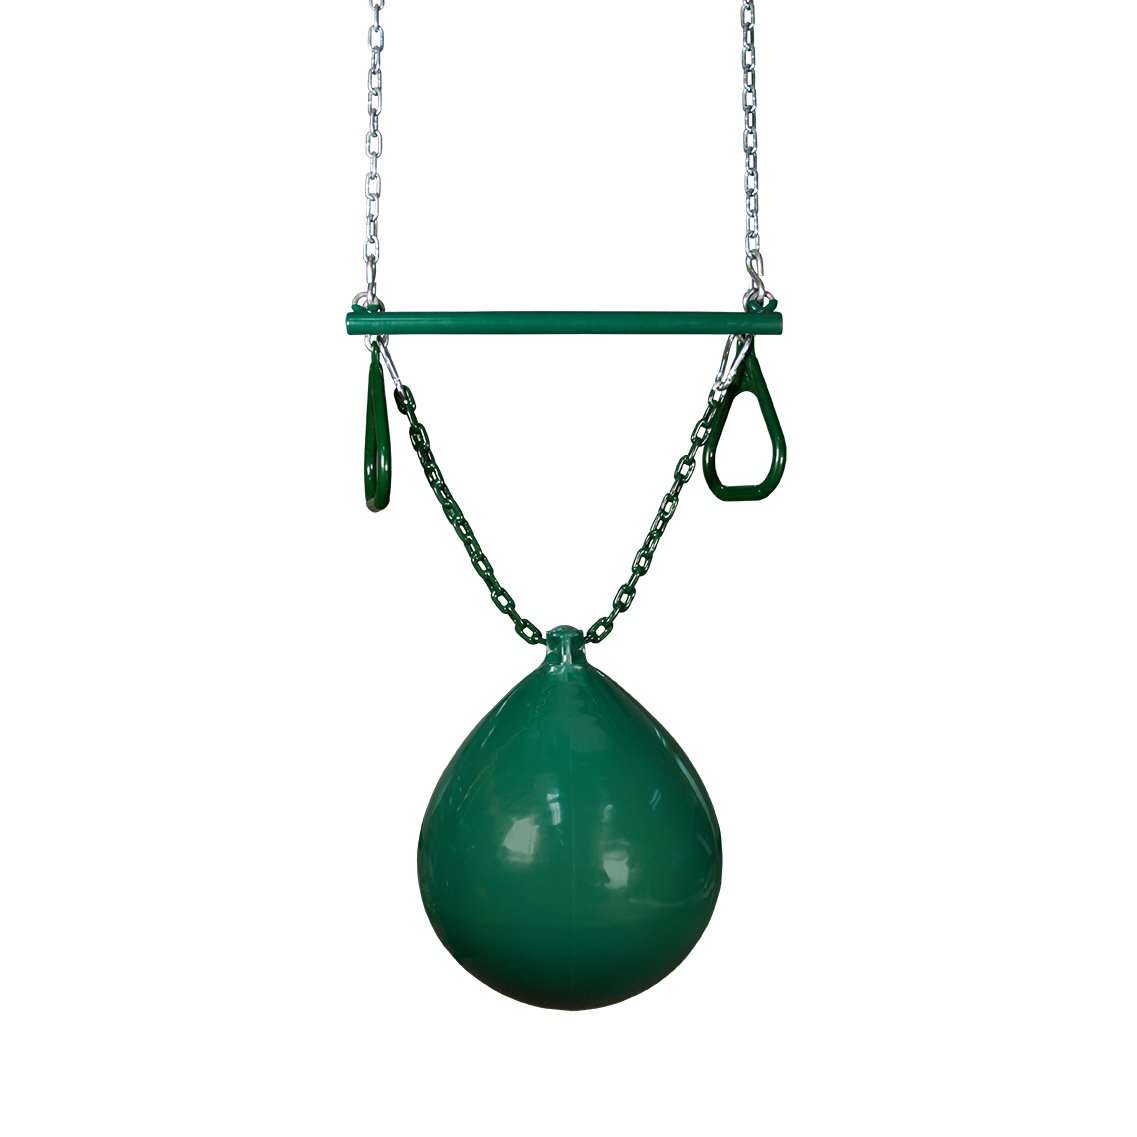 Swing-N-Slide Buoy Ball w/ Trapeze Bar (Green/Green) by Swing-N-Slide (Image #1)